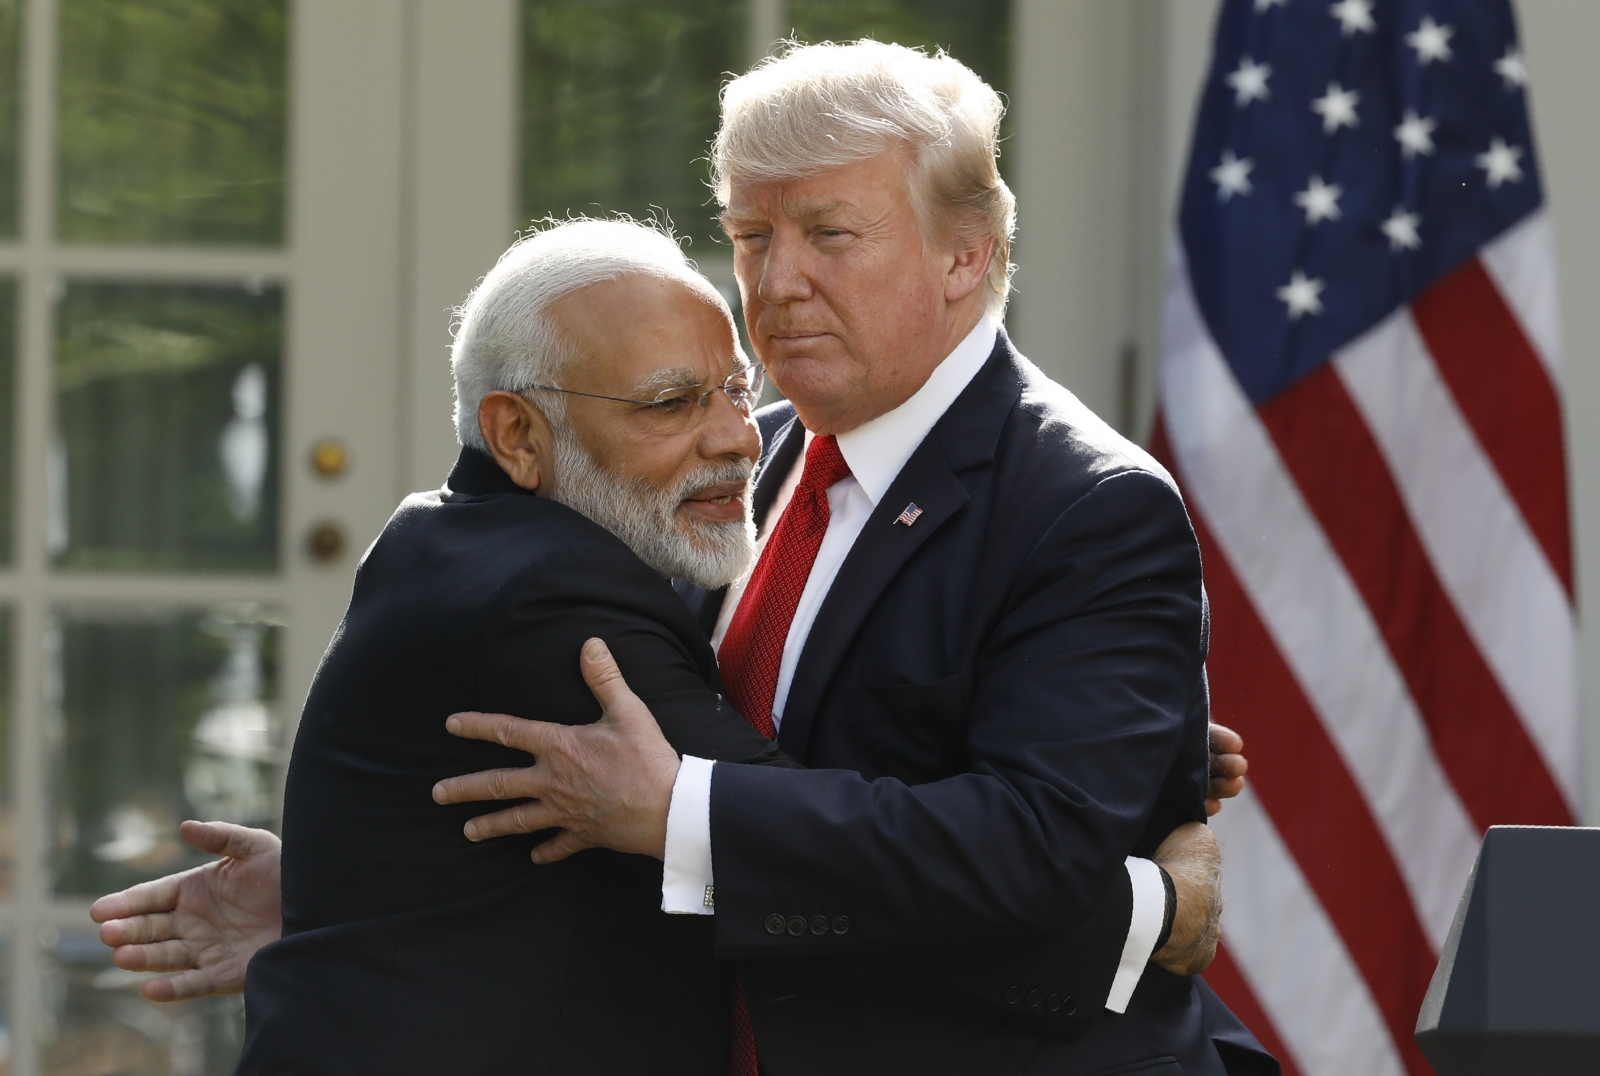 Trump and Modi hug